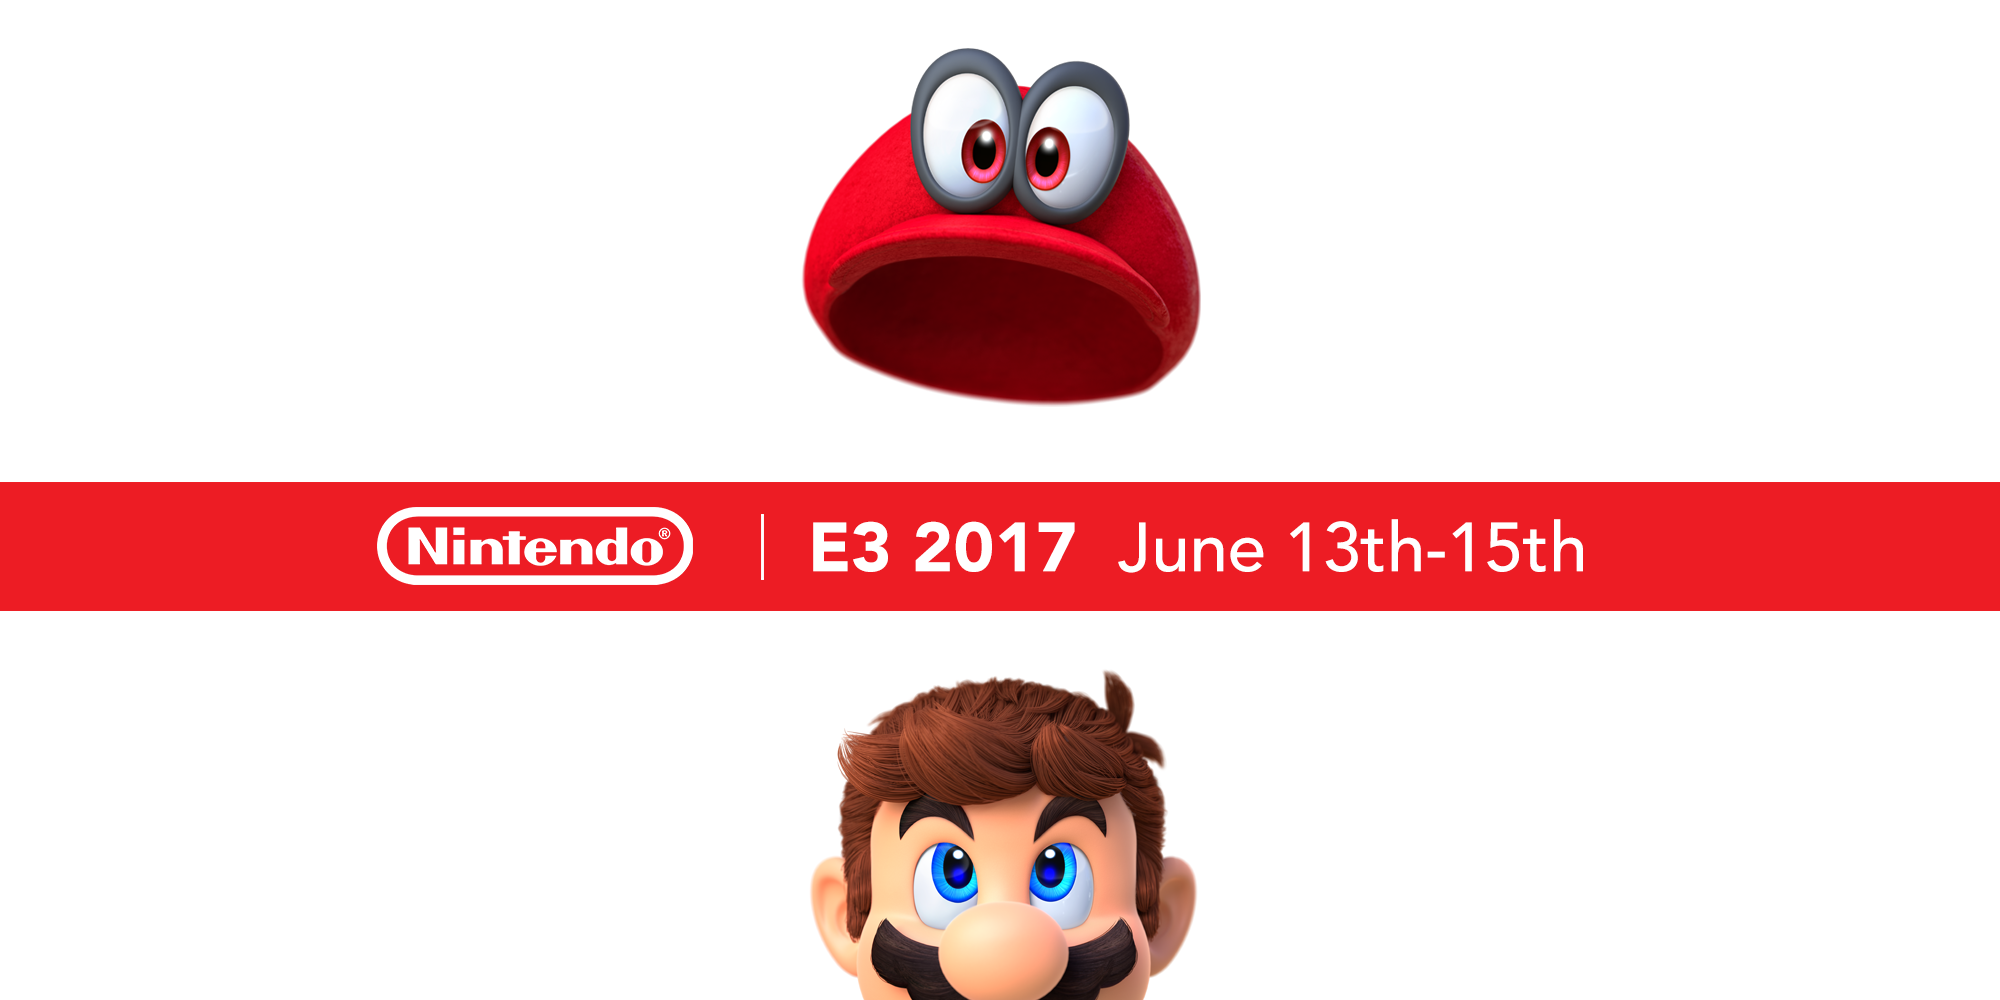 Let's-a-go! Mario, tournaments, and Nintendo Switch head to E3 2017!